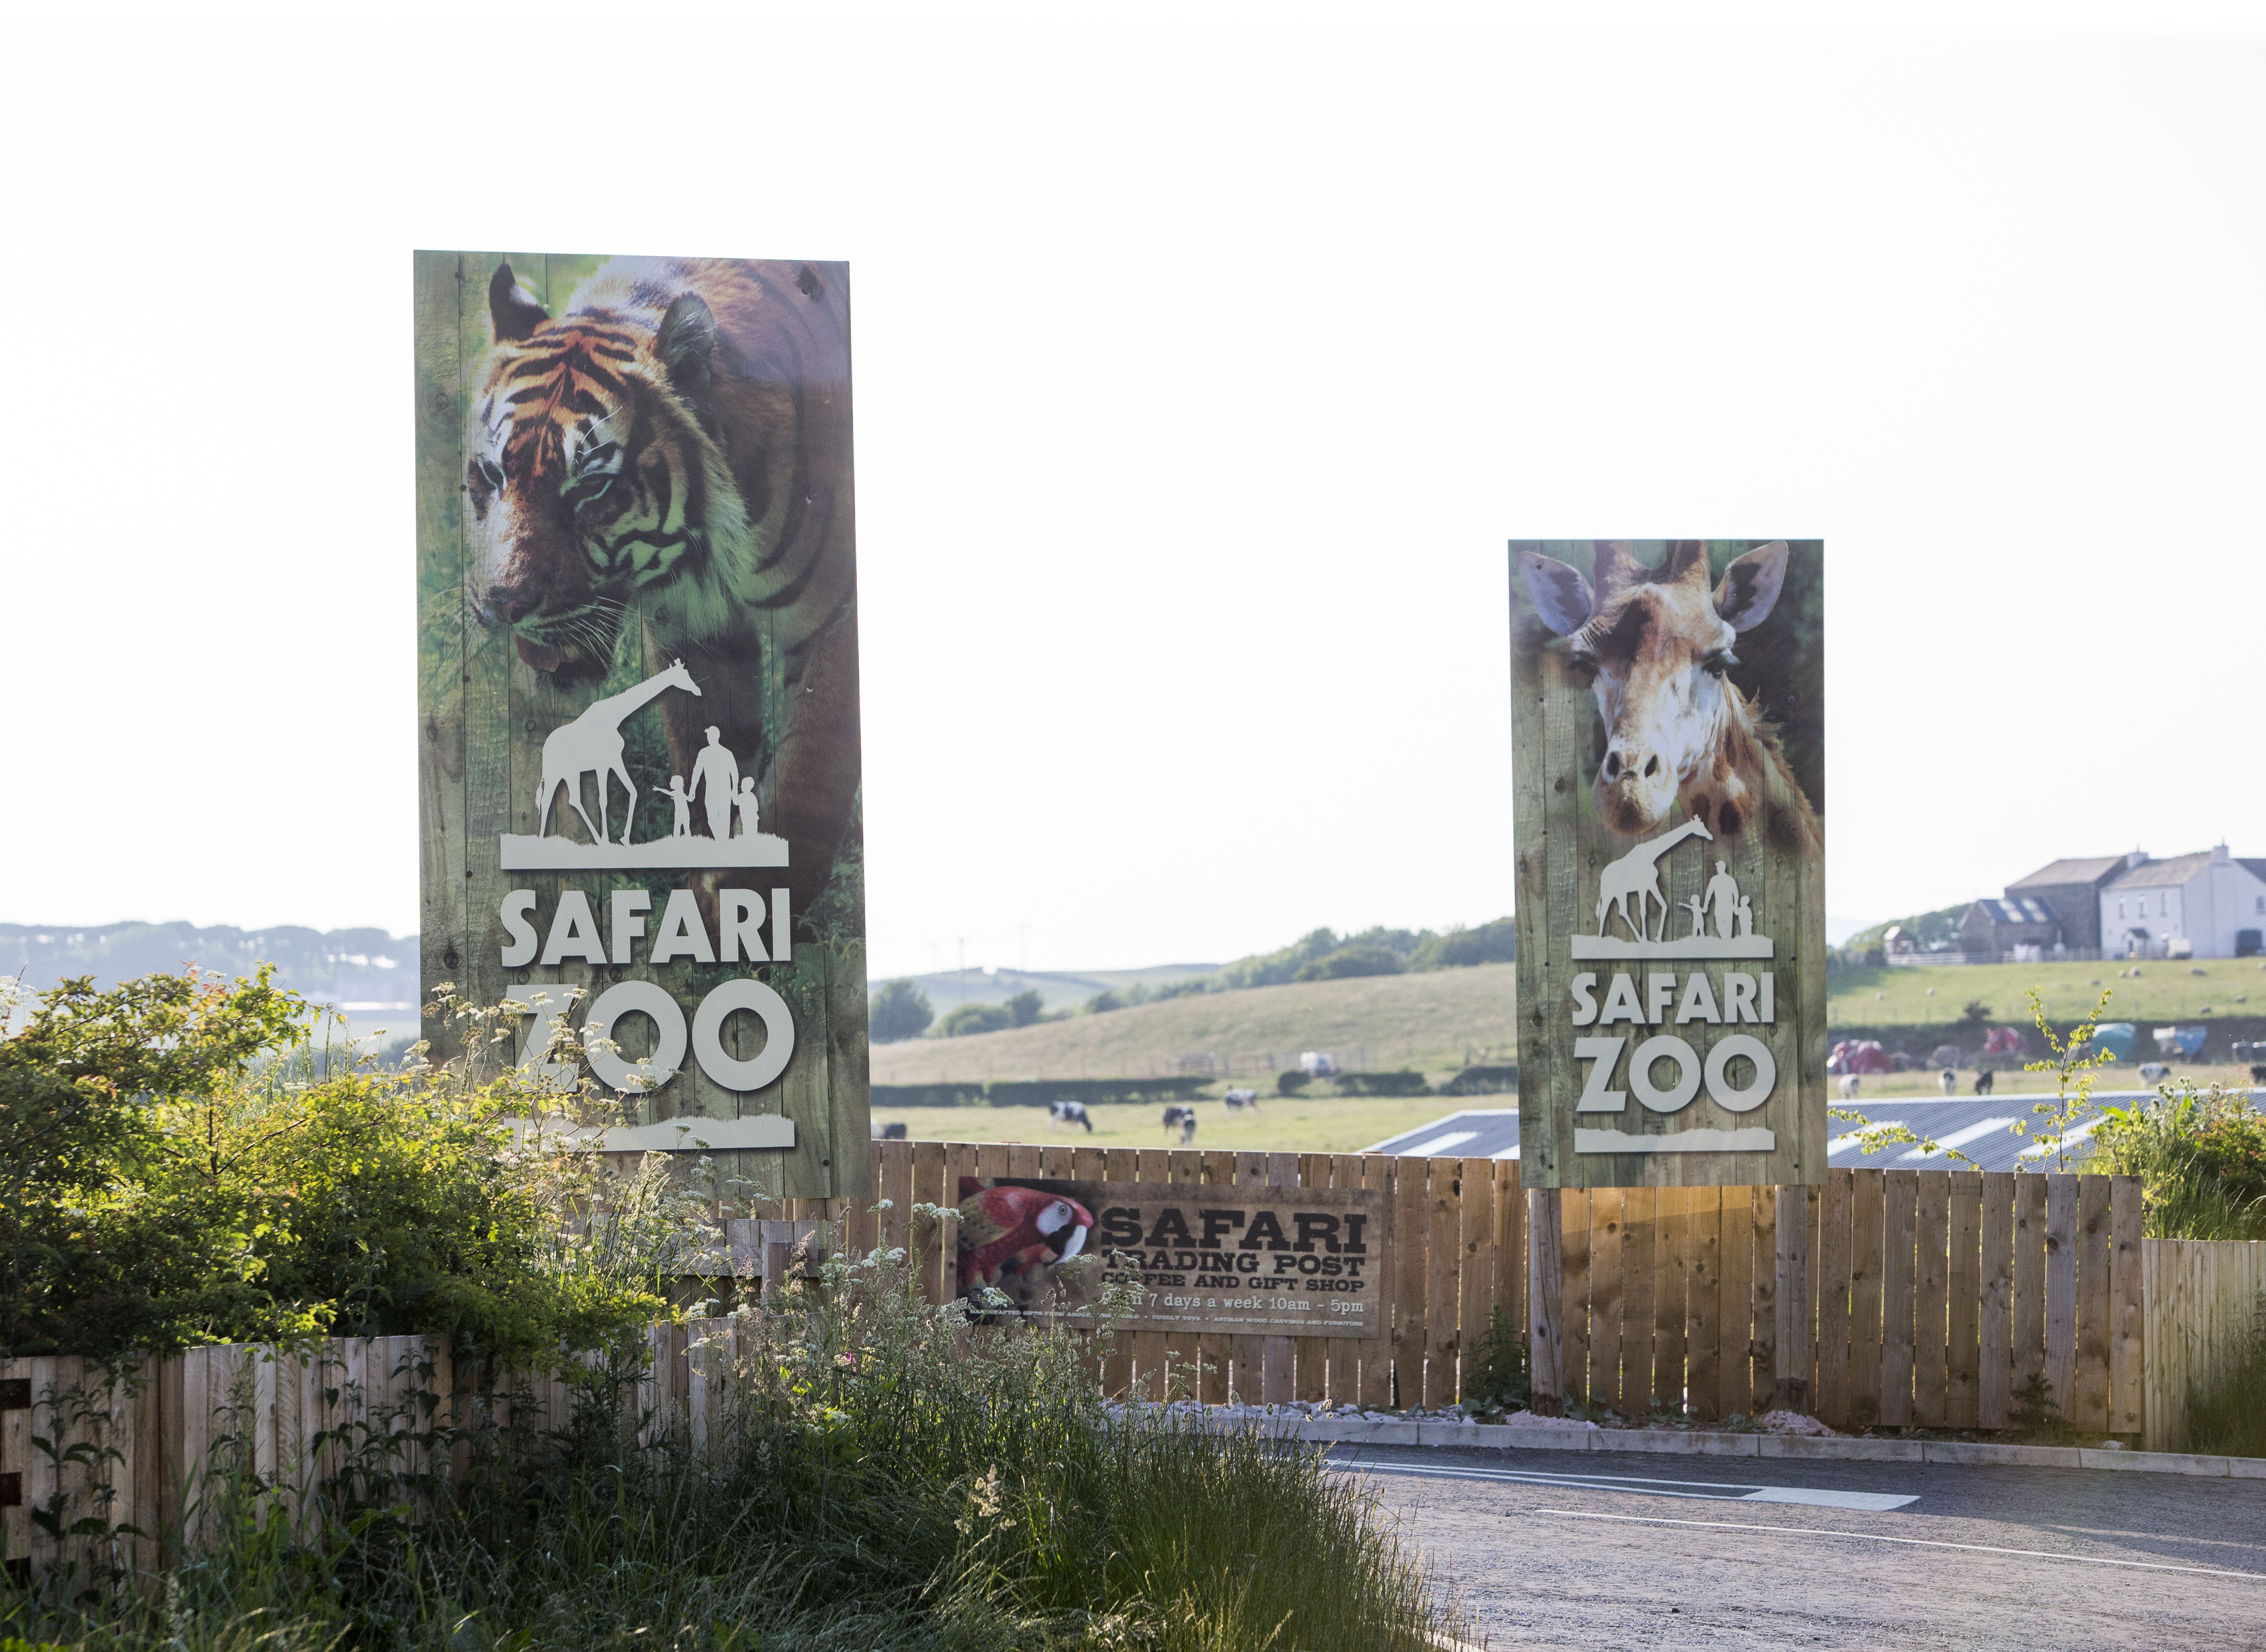 A general view of South Lakes Safari Zoo, formally known as South Lakes Wild Animal Park, in Cumbria, England on June 6, 2016.